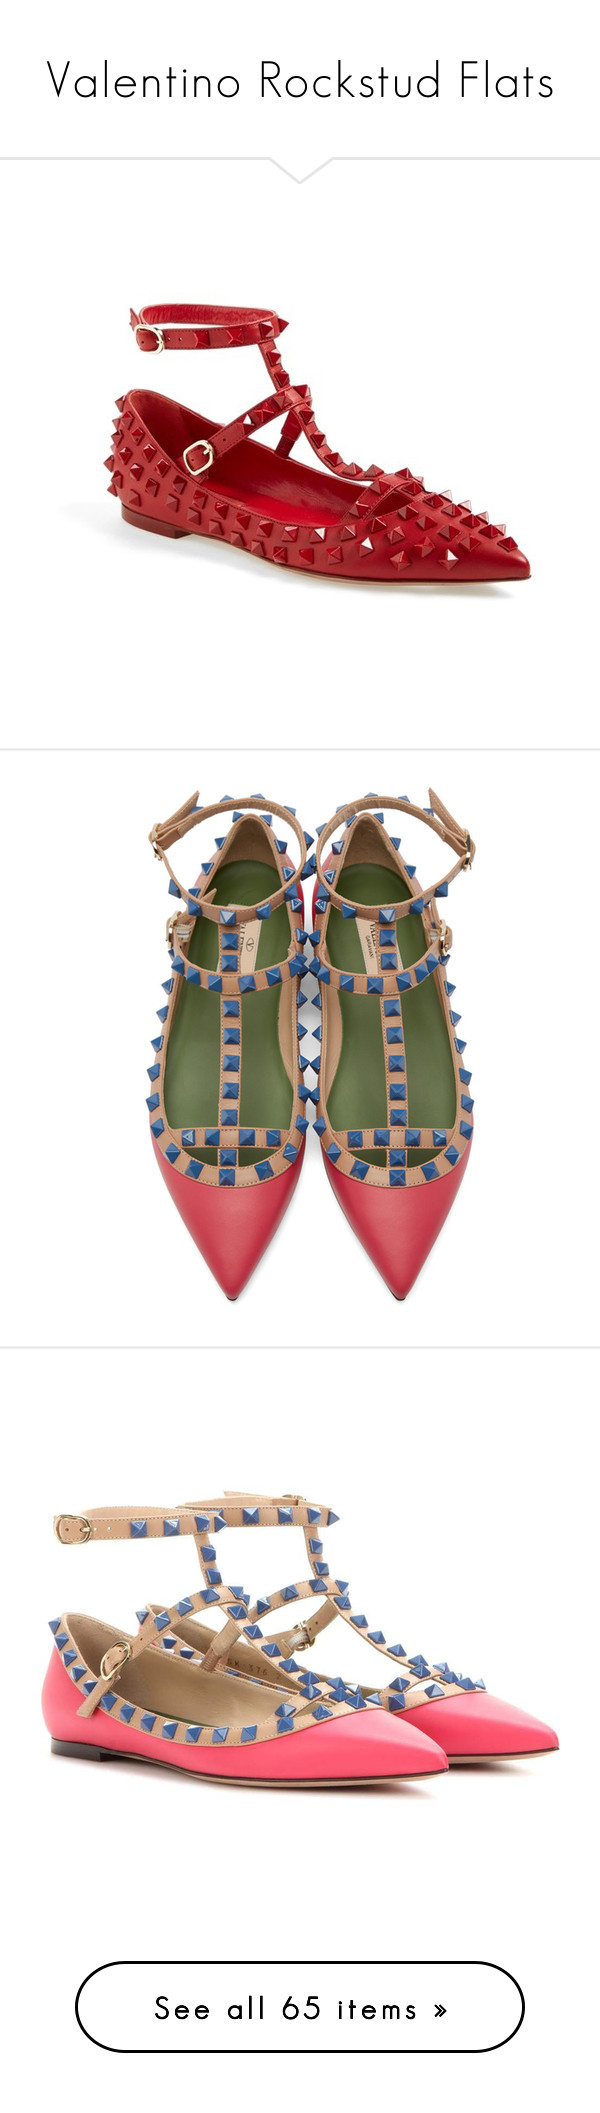 """""""Valentino Rockstud Flats"""" by leanne-mcclean ❤ liked on Polyvore featuring shoes, flats, flat shoes, t bar flats, t strap flats, strappy flats, pointed-toe ankle-strap flats, leather sole shoes, pink flats and flat heel shoes"""